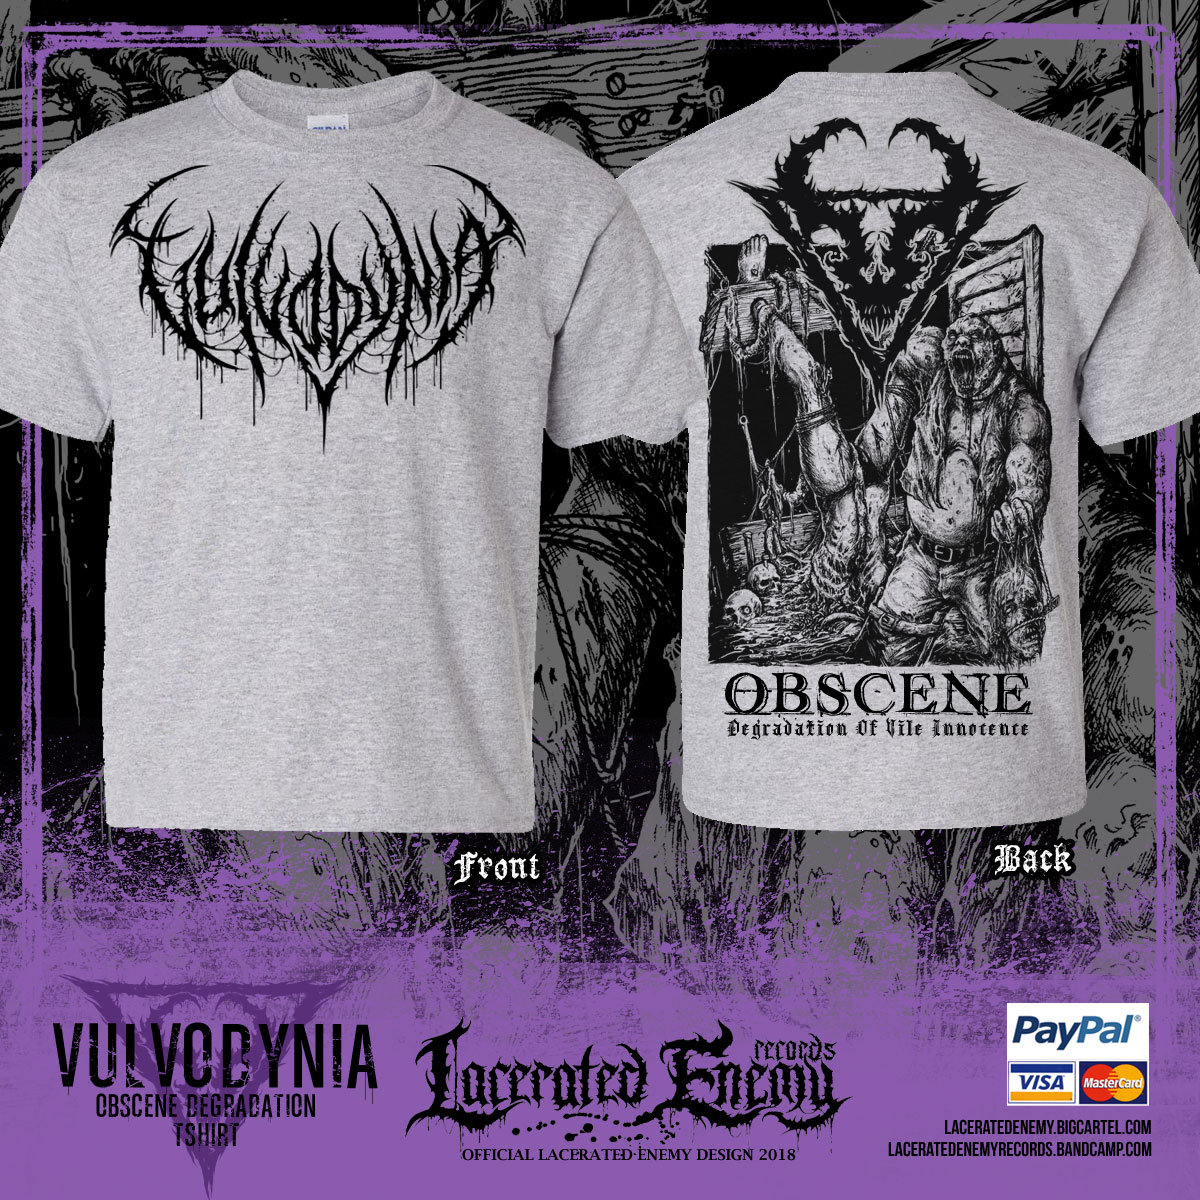 cbb90caf0 2018 OBSCENE EXTREME festival exclusive design - leftover. Sports Grey shirt  color! Limited Quantities! Only 15 pcs left